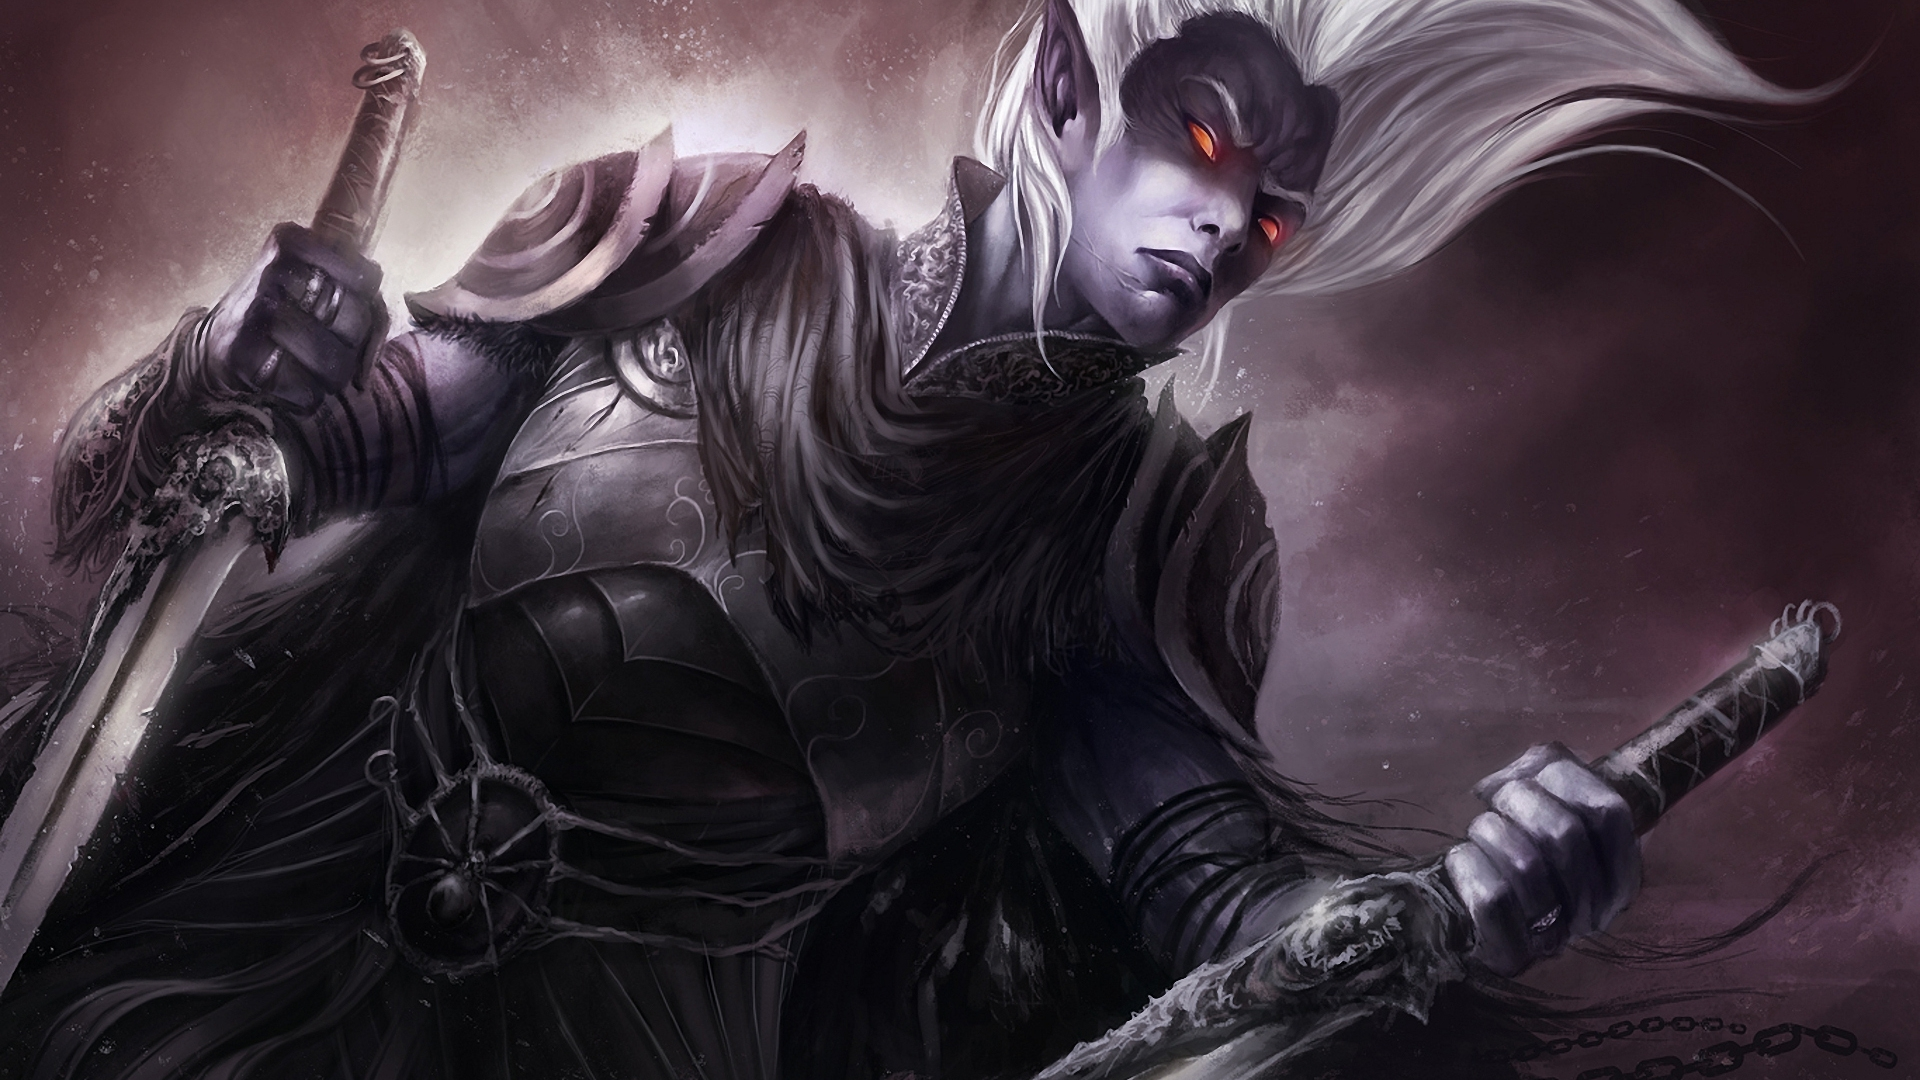 Drow-A-drow-or-dark-elf-is-a-dark-skinned-red-eyed-evil-race-who-live-far-below-the-surface-of-wallpaper-wp3405102